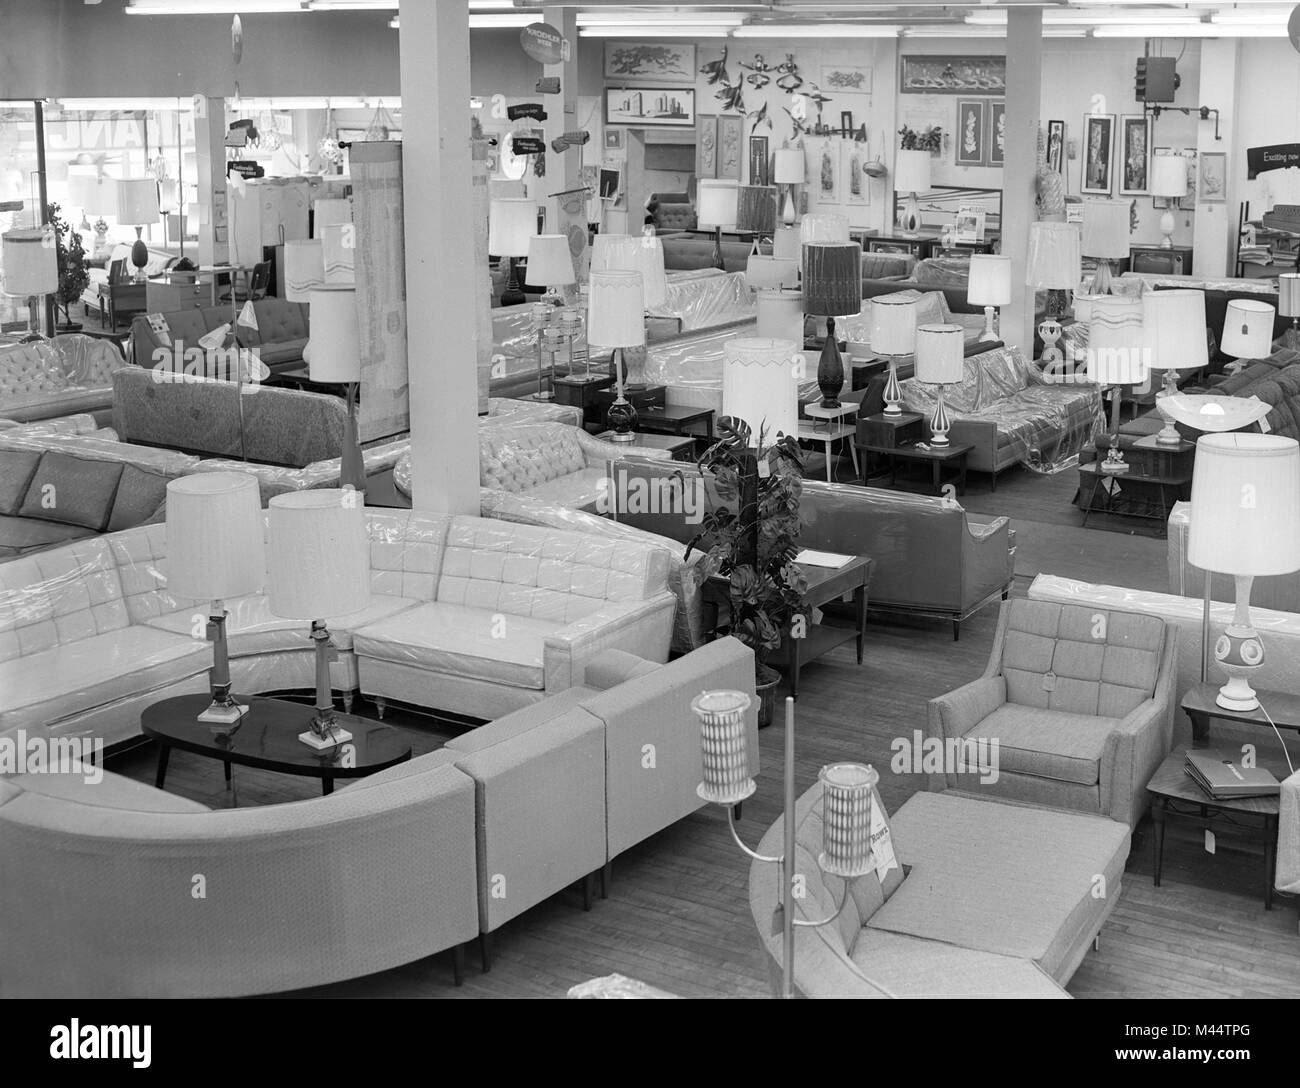 Furniture Showroom High Resolution Stock Photography And Images Alamy